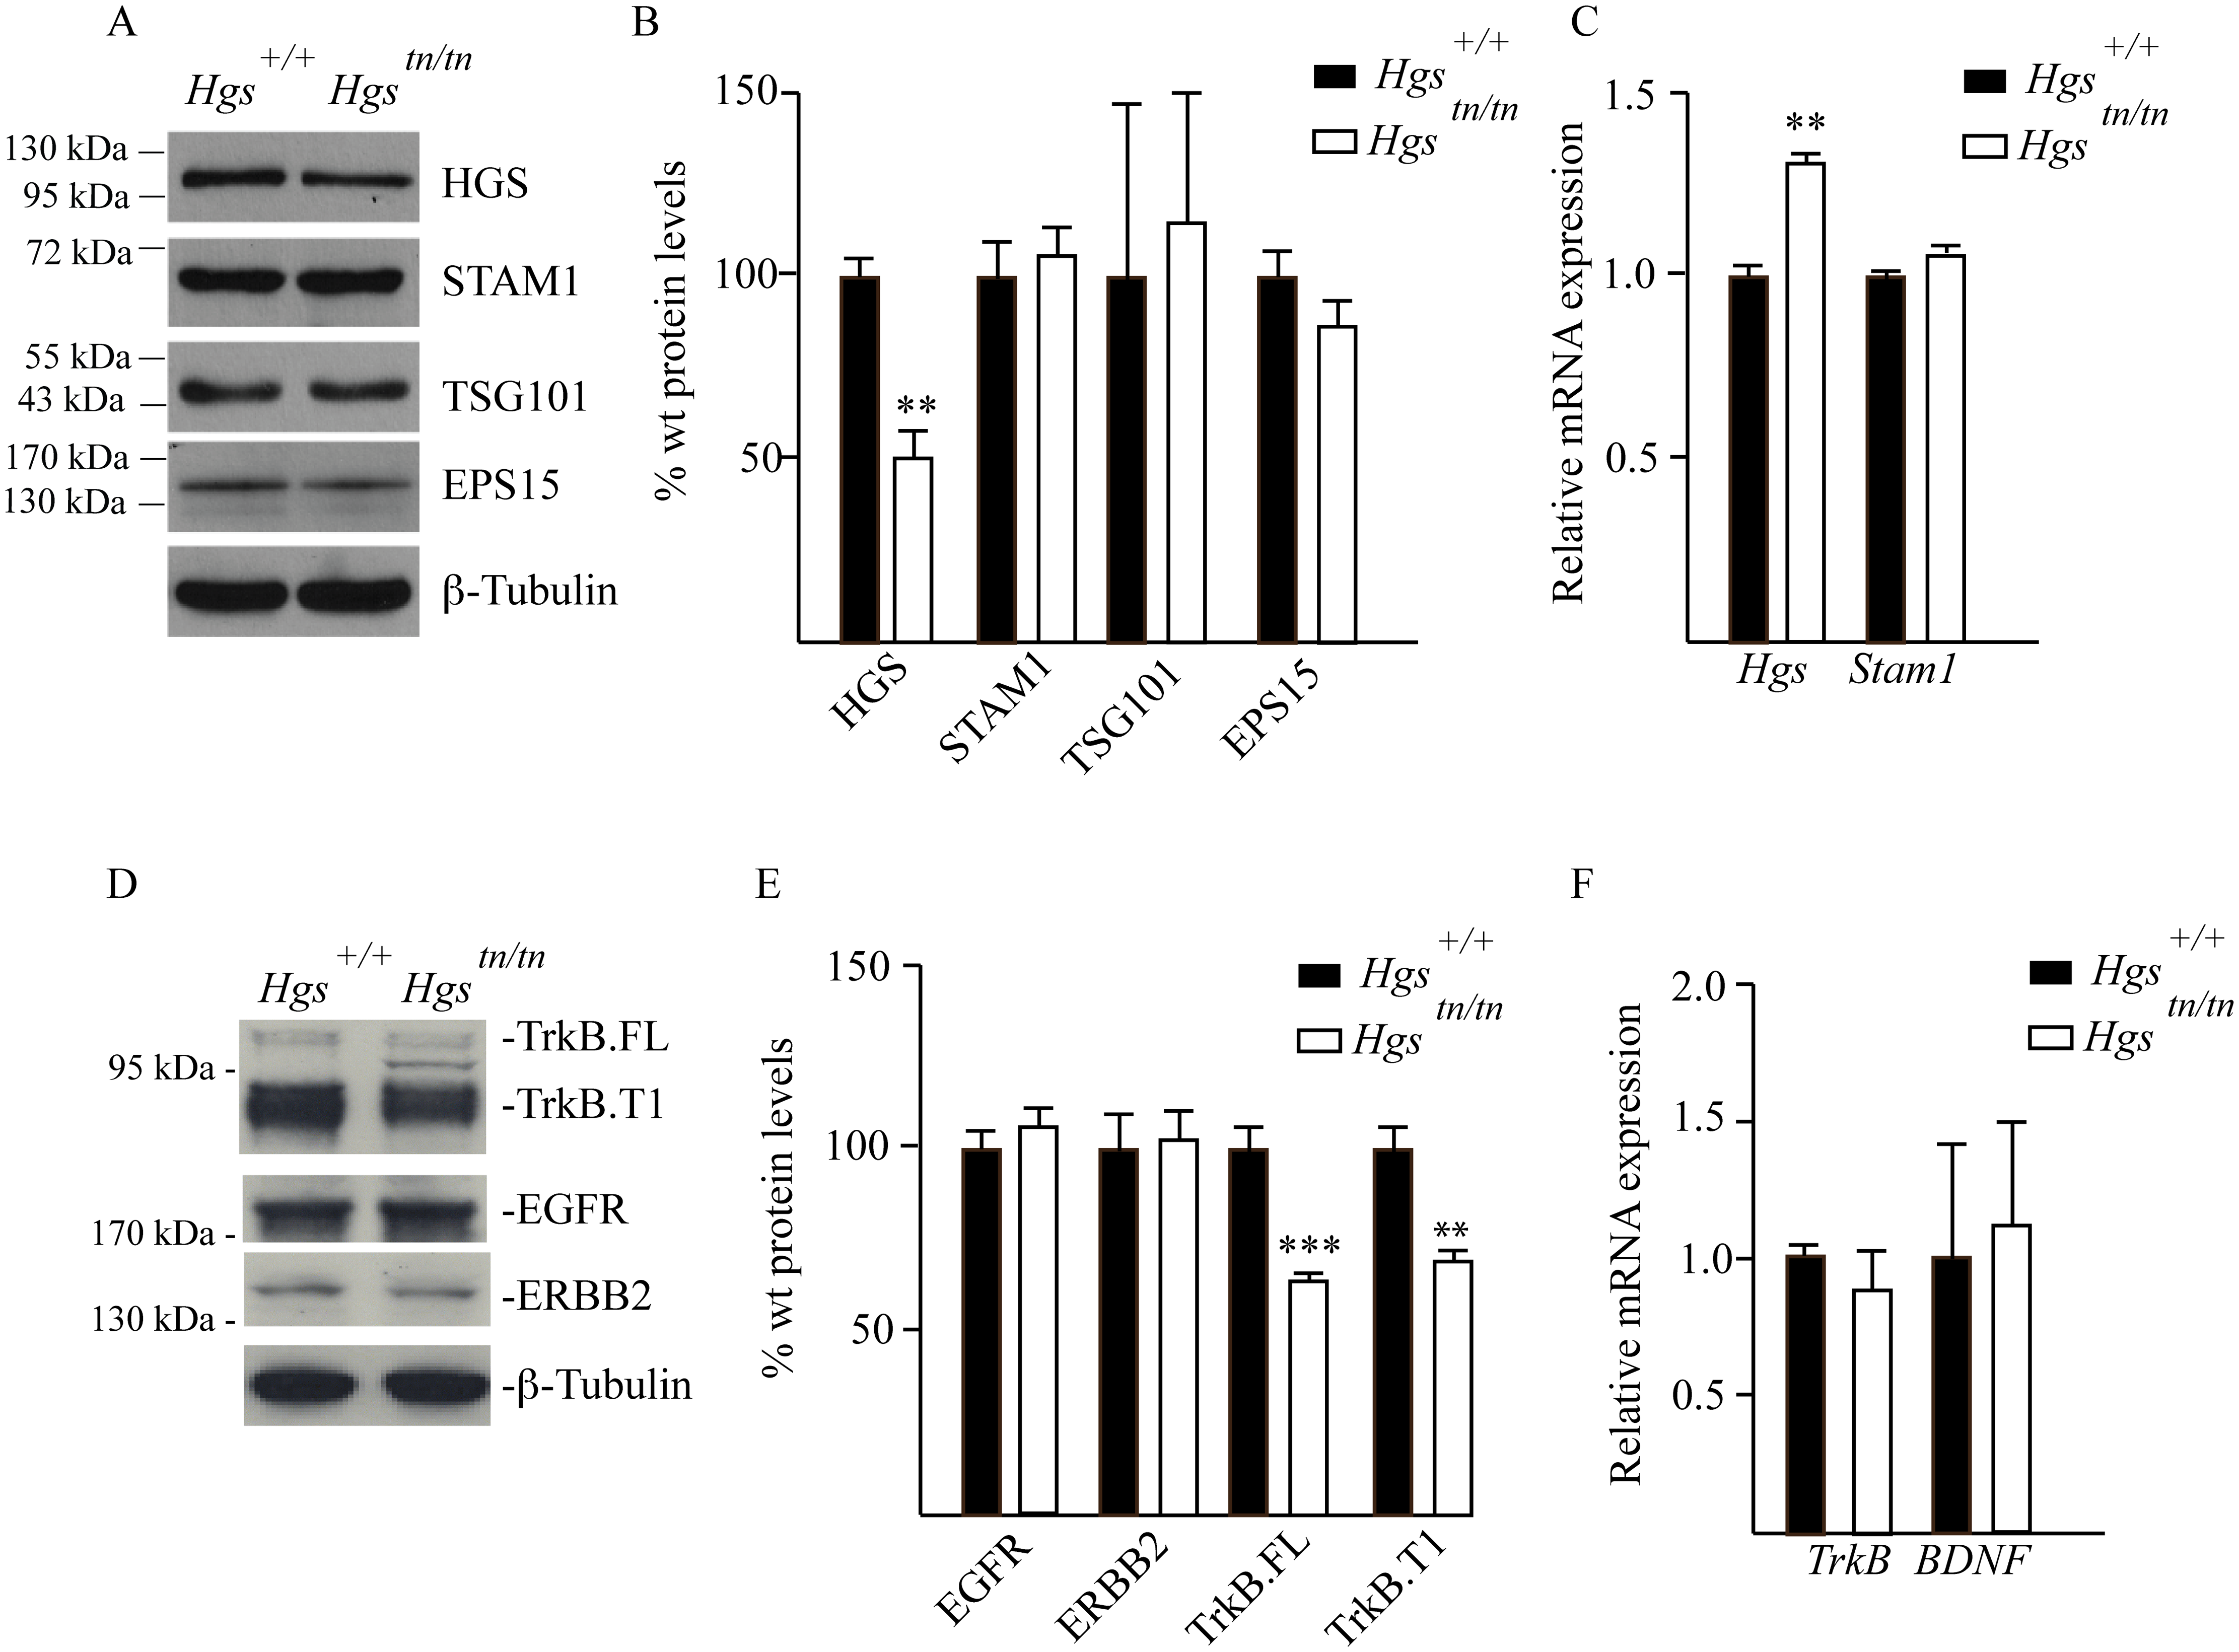 Analysis of ESCRT and RTK expression in the sciatic nerves of 4-week-old <i>Hgs</i><sup><i>+/+</i></sup> and <i>Hgs</i><sup><i>tn/tn</i></sup> mice.